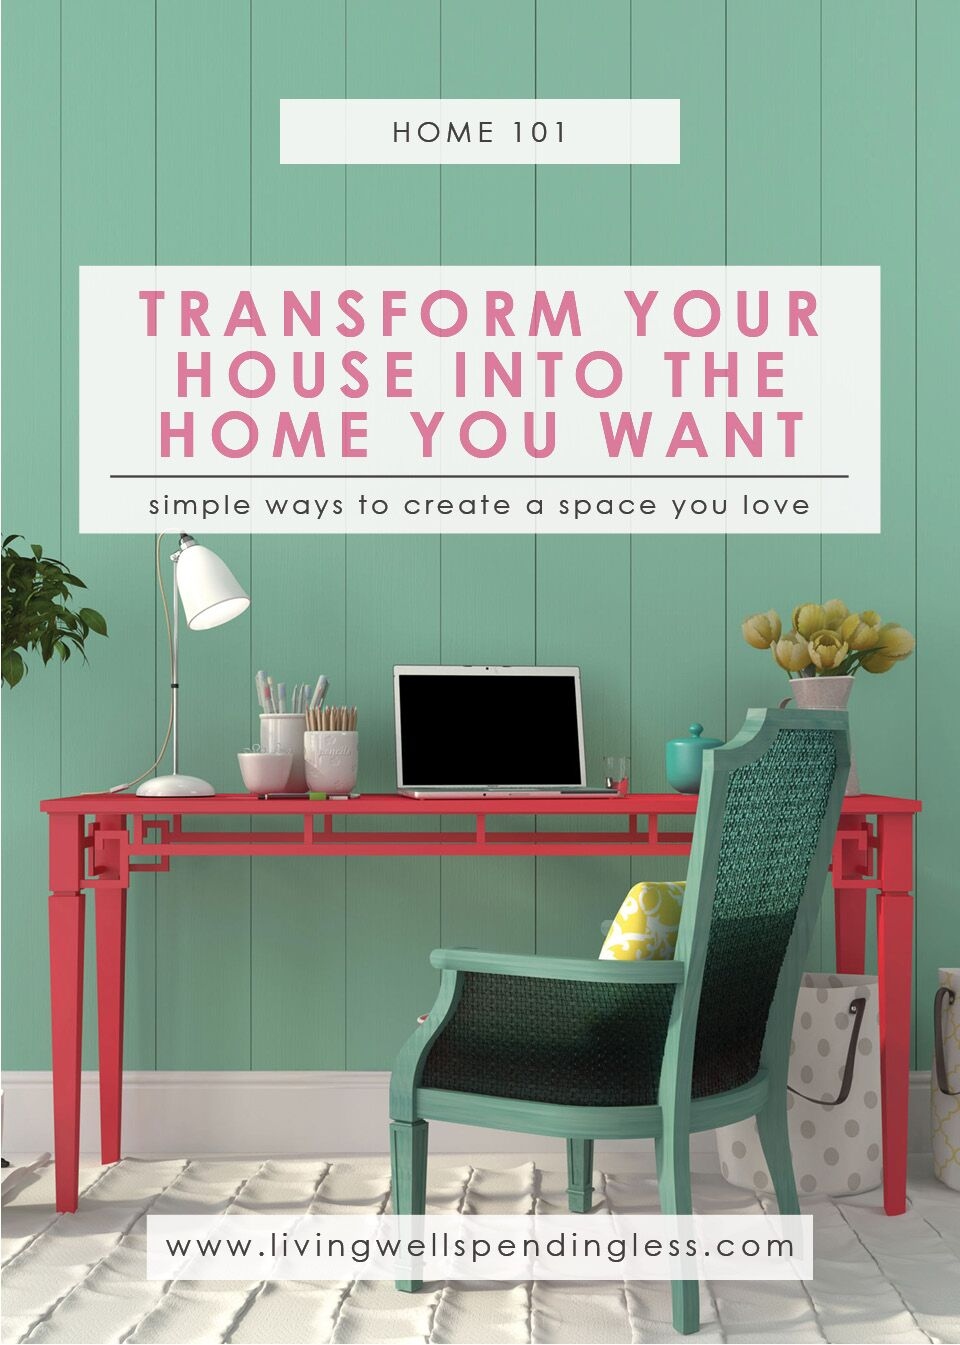 Transform Your House into the Home You Want | House Transformation | Make Your Dream House